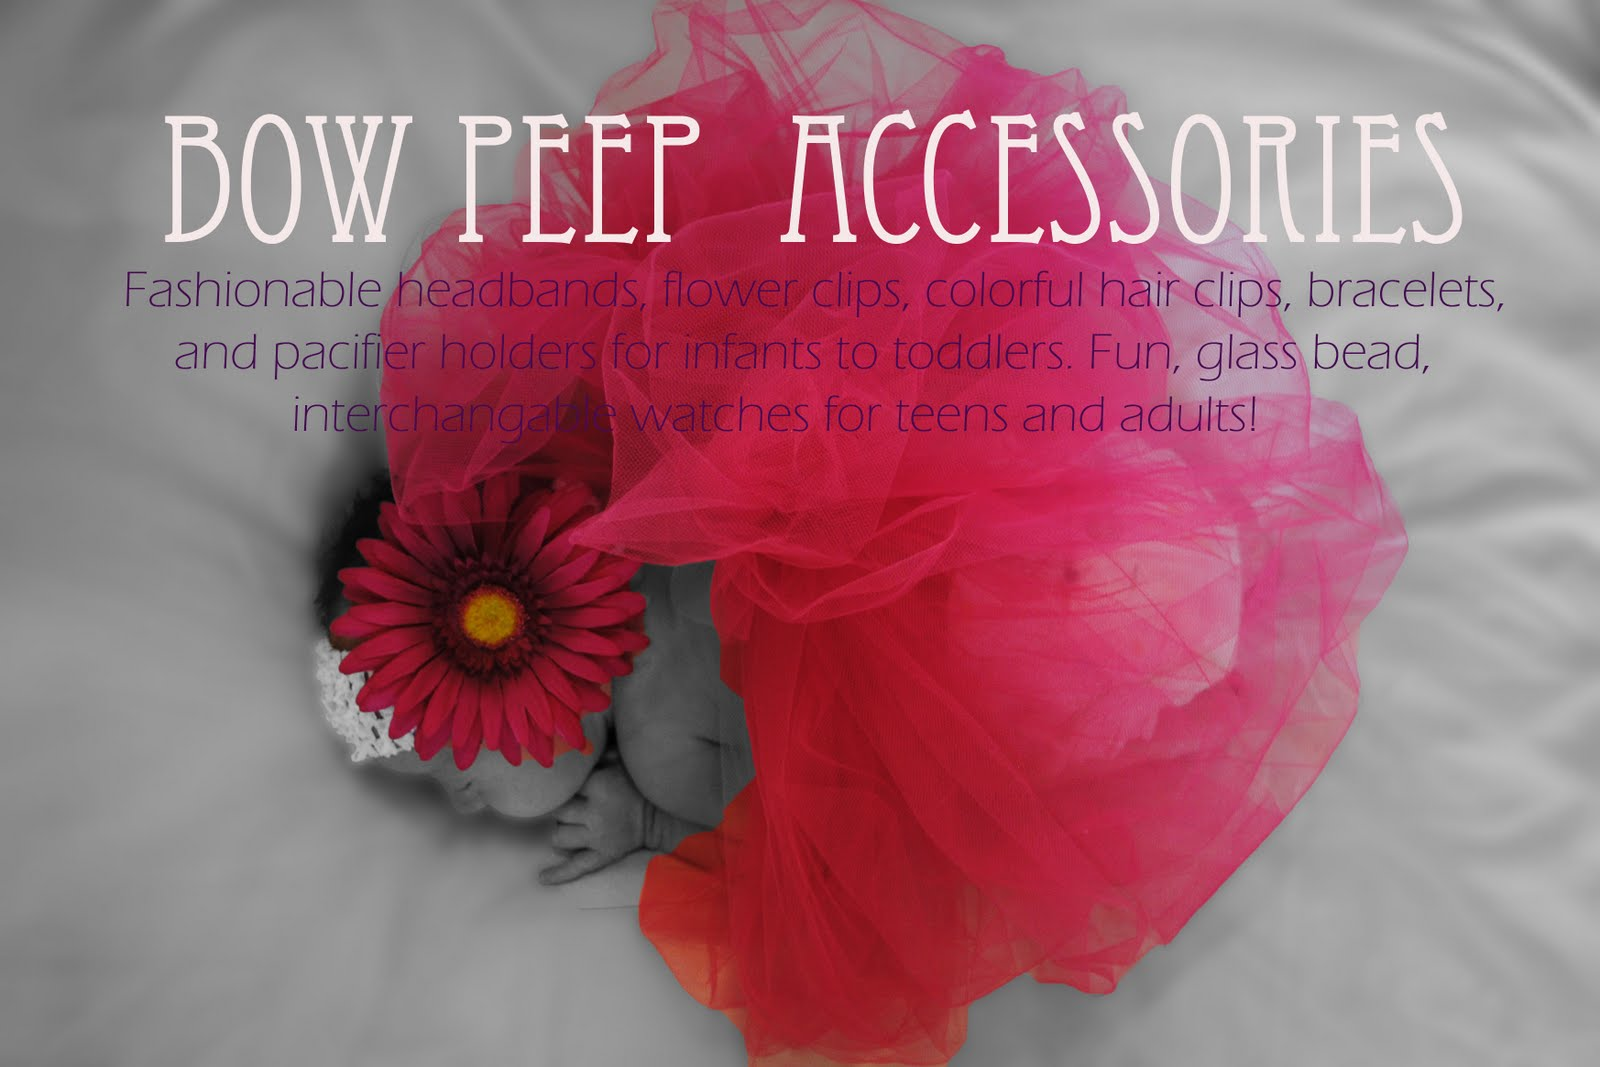 Bow Peep Accessories